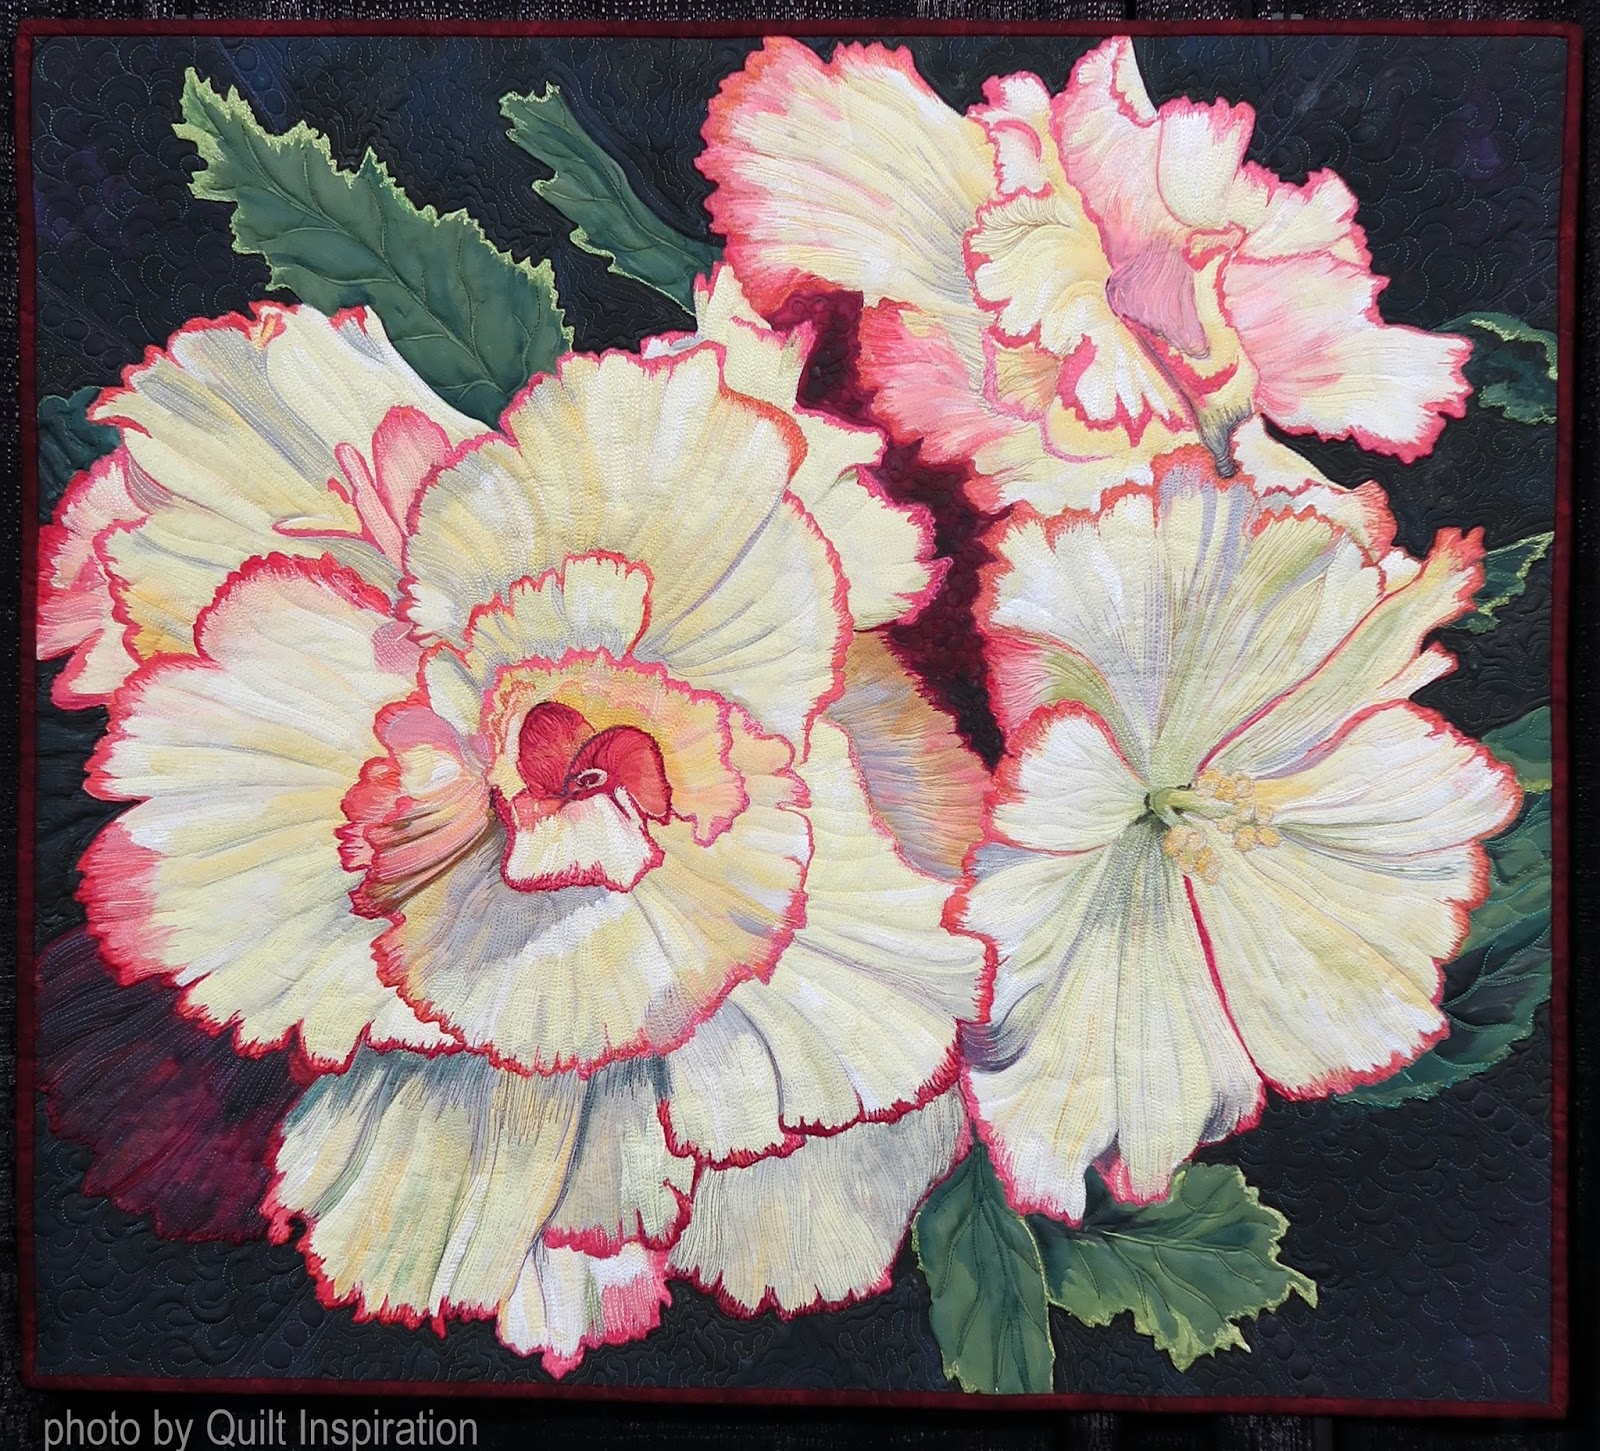 Quilt Inspiration: May Flowers